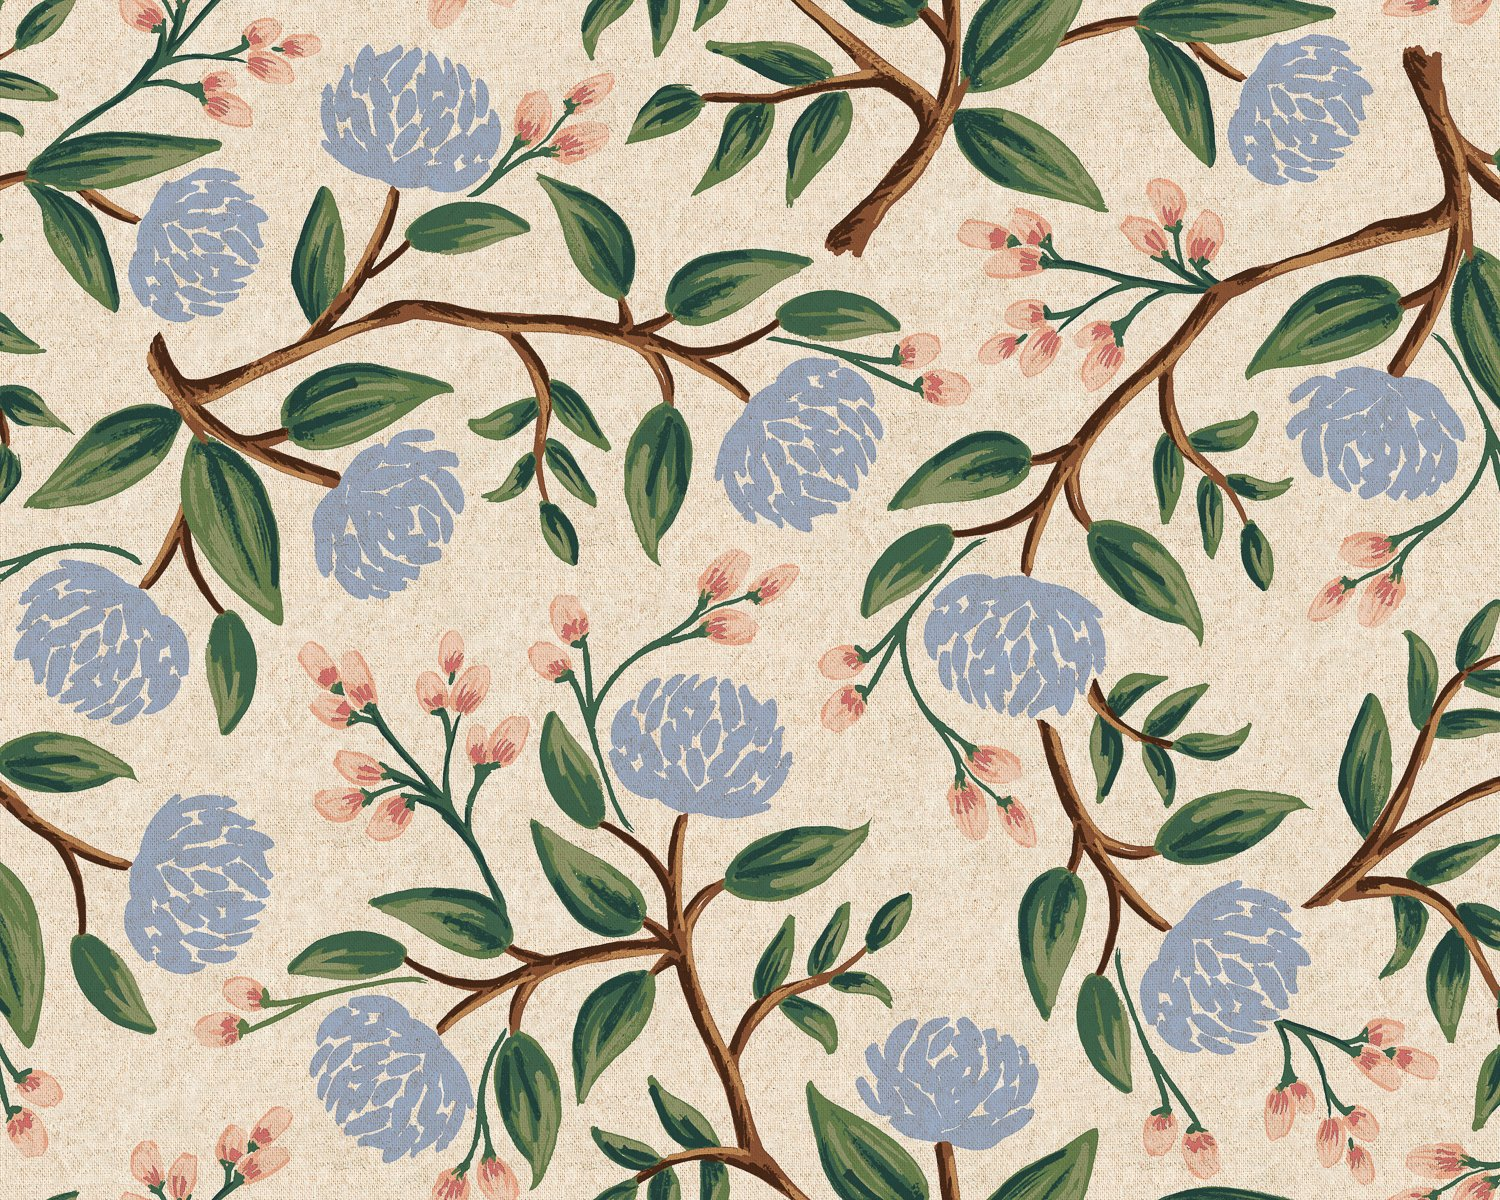 Peonies - Cream Canvas  Wildwood - Rifle Paper Co.